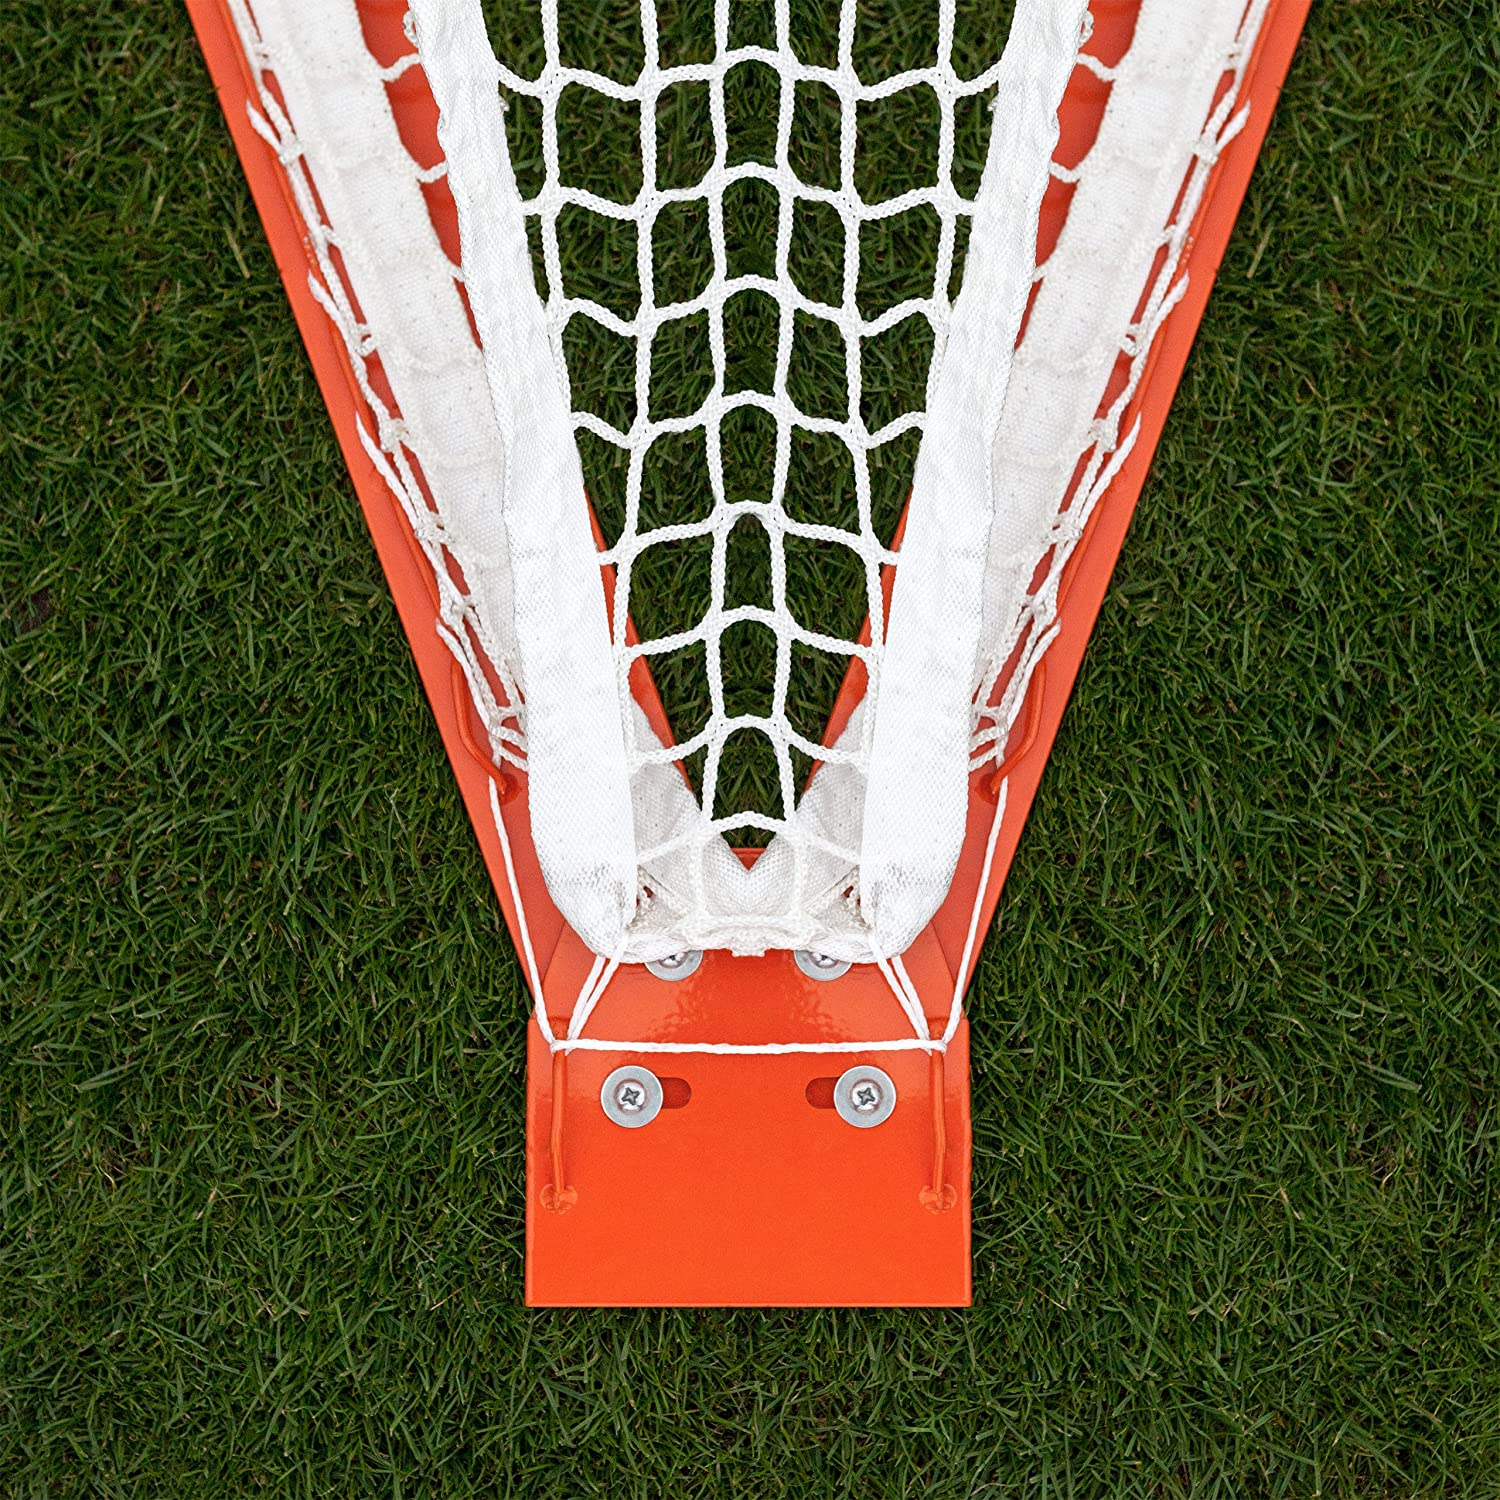 Net World Sports Professional Lacrosse Goal 6ft x 6ft NCAA Competition Match Spec